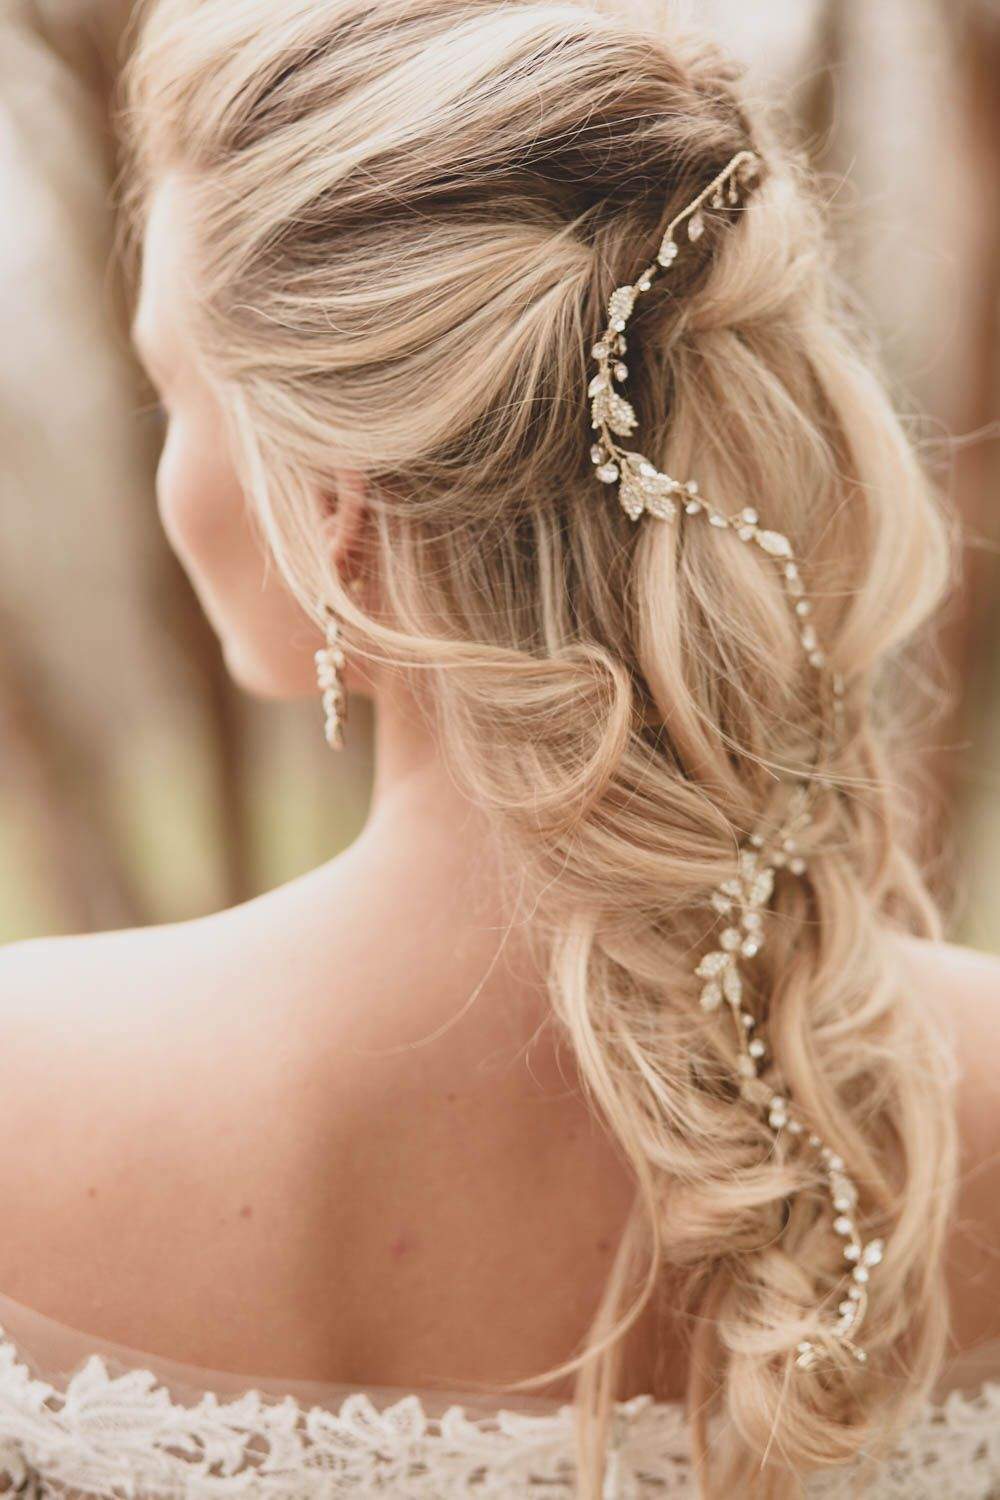 Love This Bridal Hair Idea And That Hair Vine Is Beautiful In 2020 Bridal Hair Accessories Bridal Hair And Makeup Wedding Hairstyles For Long Hair